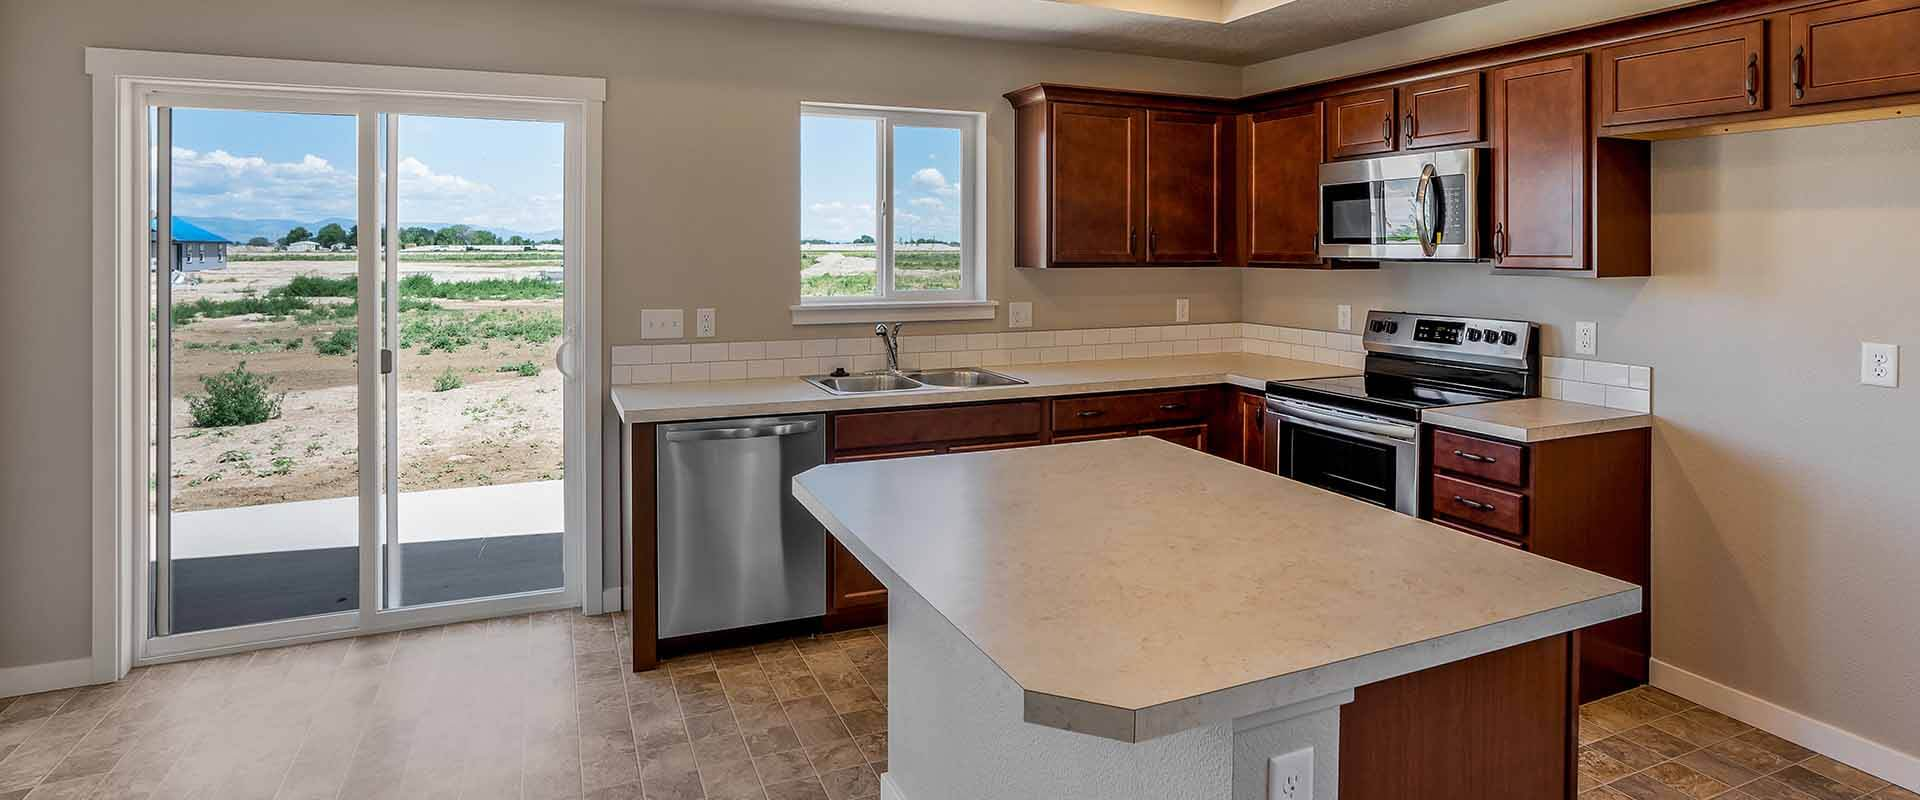 Huckleberry_Hubble_Homes_New_Homes_Boise_0001_Kitchen - Huckleberry -17930 Hensley Ridge Pl-61.jpg